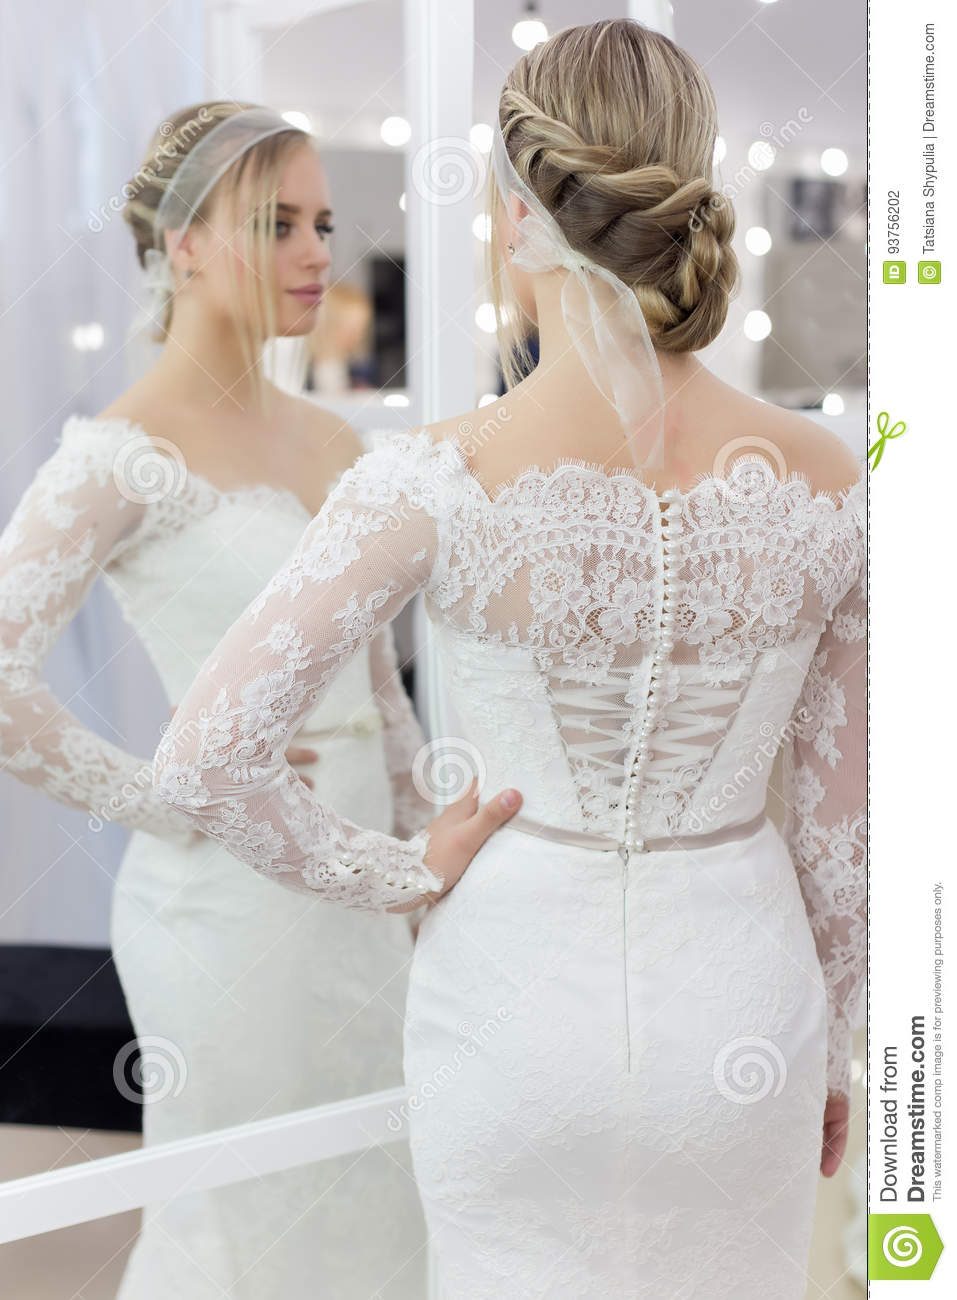 Beautiful cute tender young girl bride in wedding dress in mirrors with evening hair and gentle light make-up